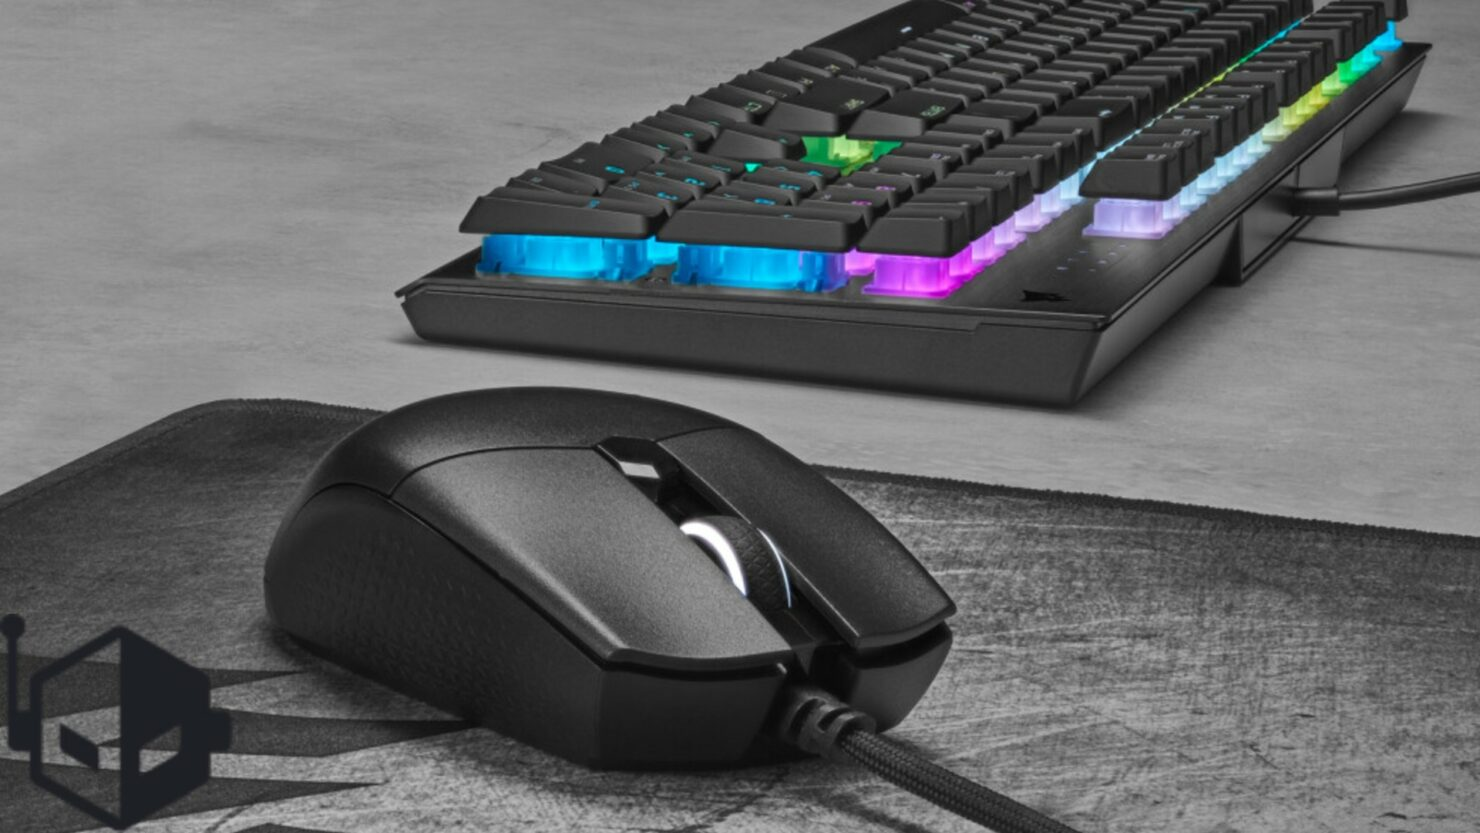 corsair-launches-the-katar-pro-xt-gaming-mouse